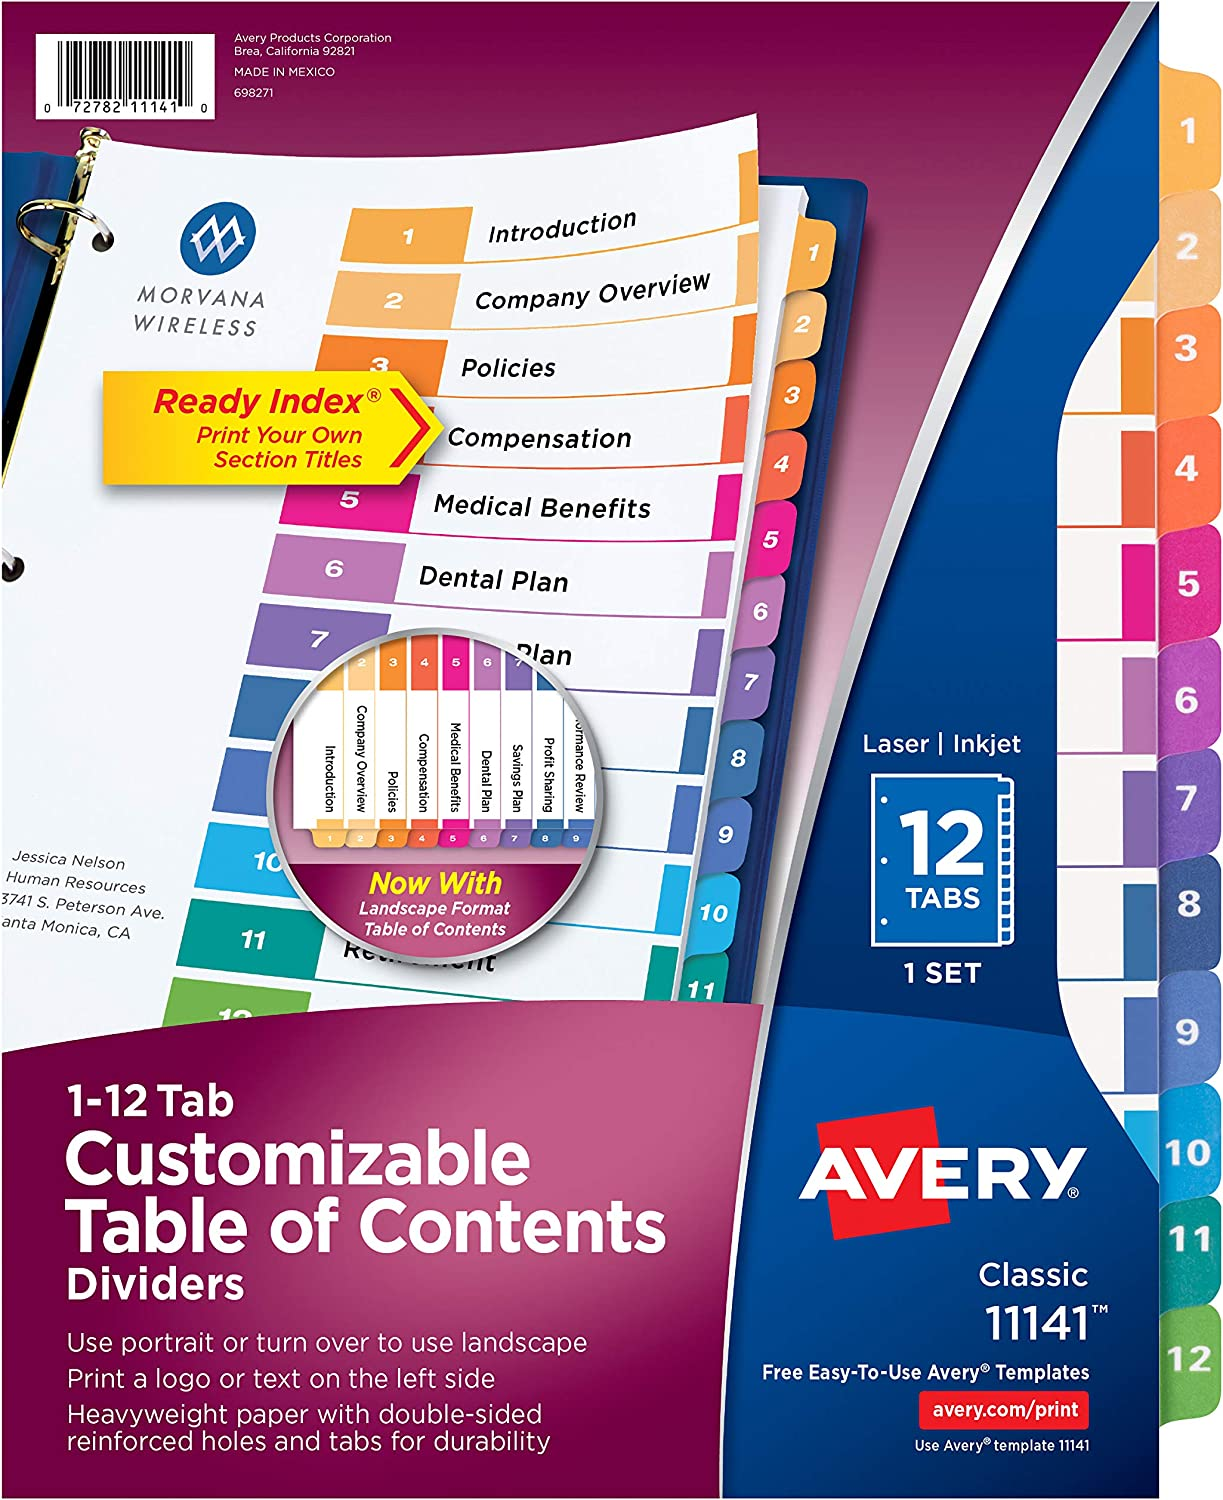 Avery 12-Tab Dividers for 3 Ring Binders, Customizable Table of Contents, Multicolor Tabs, 1 Set (11141)